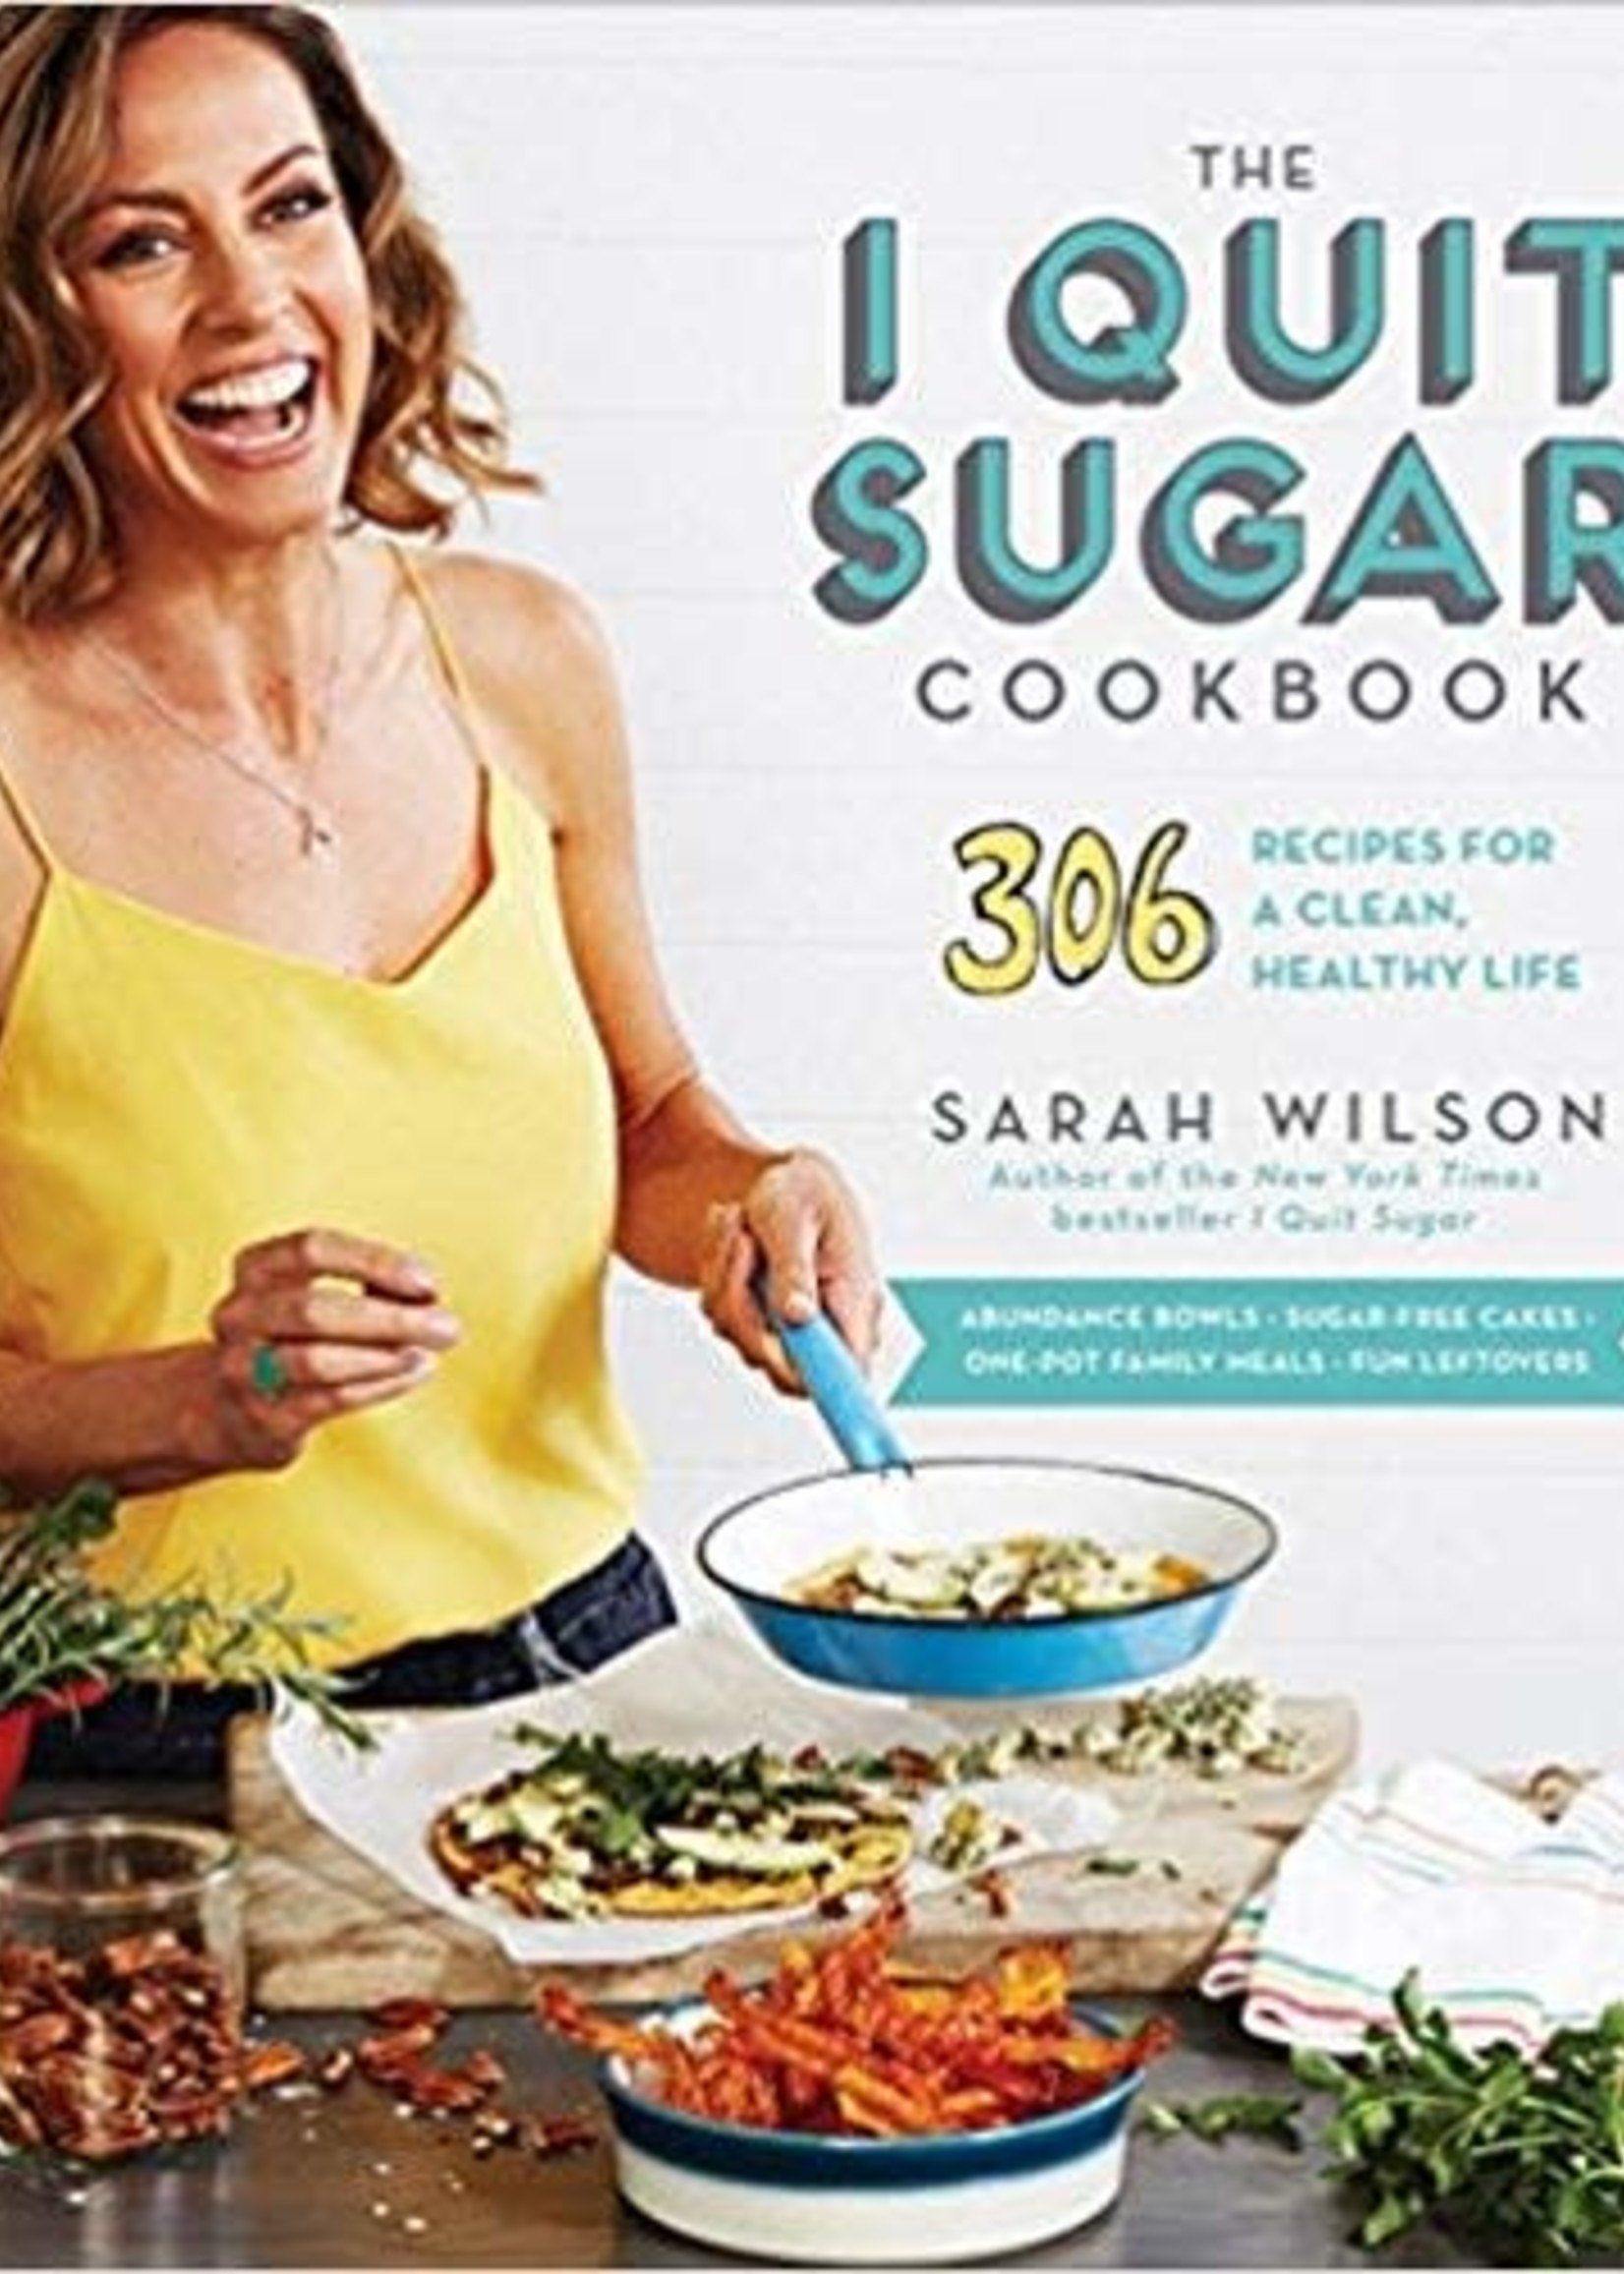 The I Quit Sugar Cookbook: 306 Recipes for a Clean, Healthy Life*